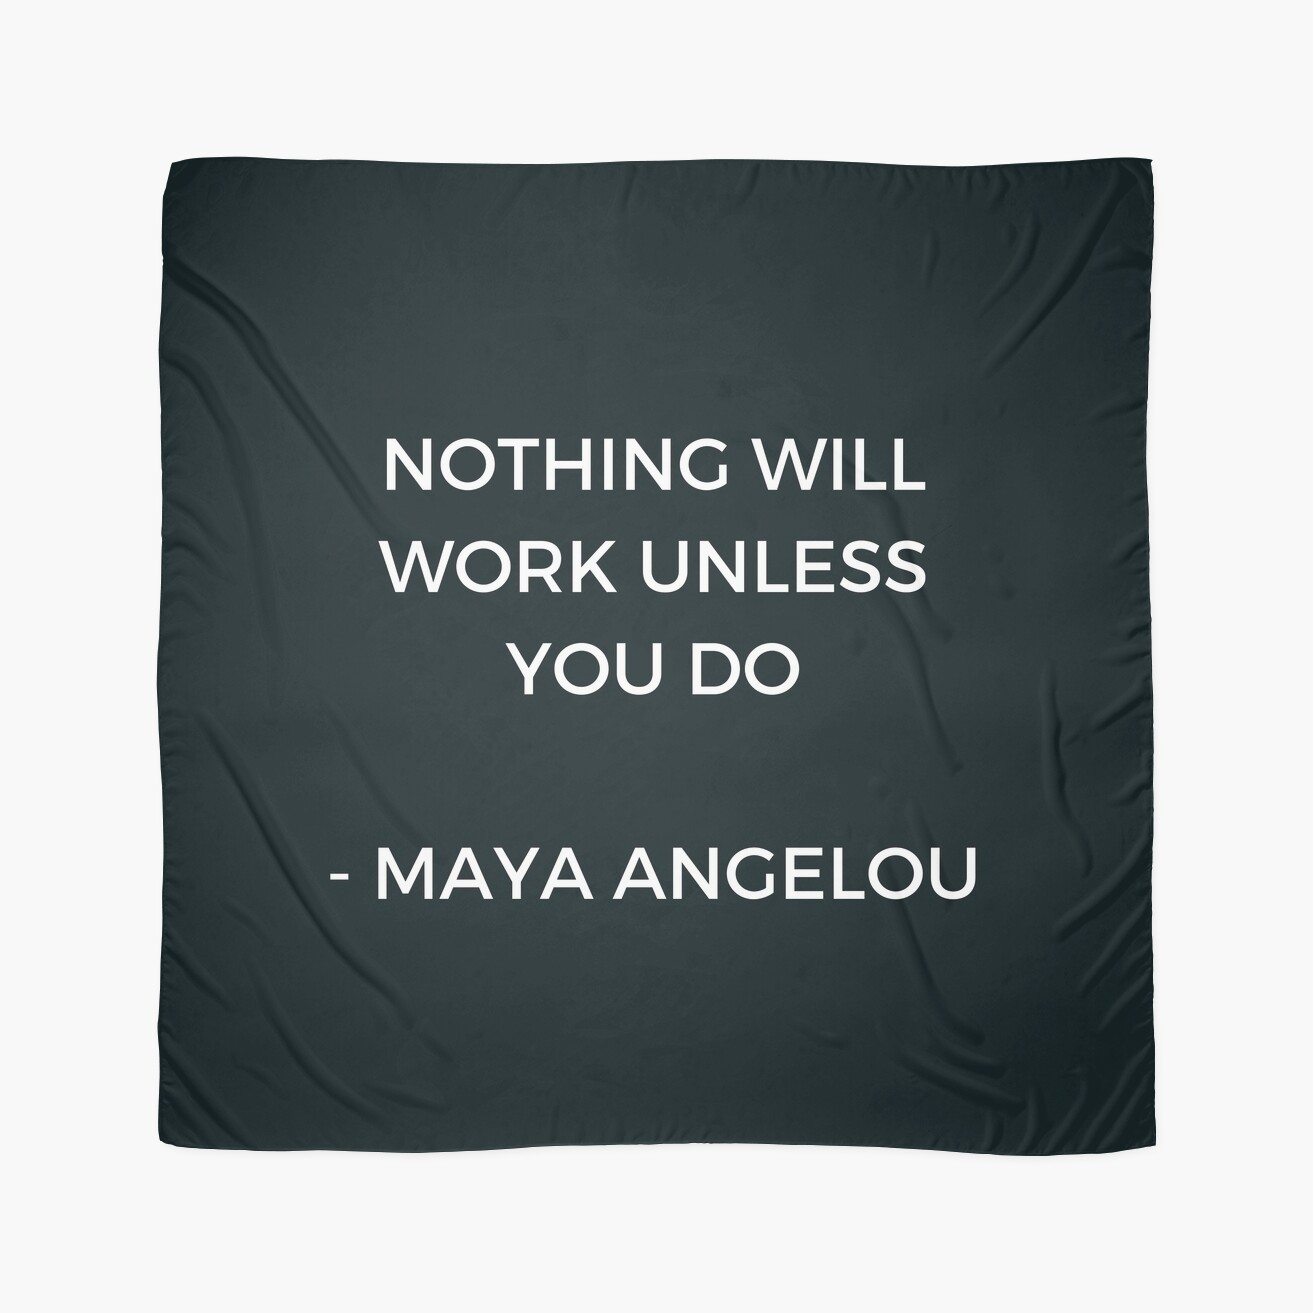 Maya angelou inspirational quote nothing will work unless you do maya angelou inspirational quote nothing will work unless you do kristyandbryce Images